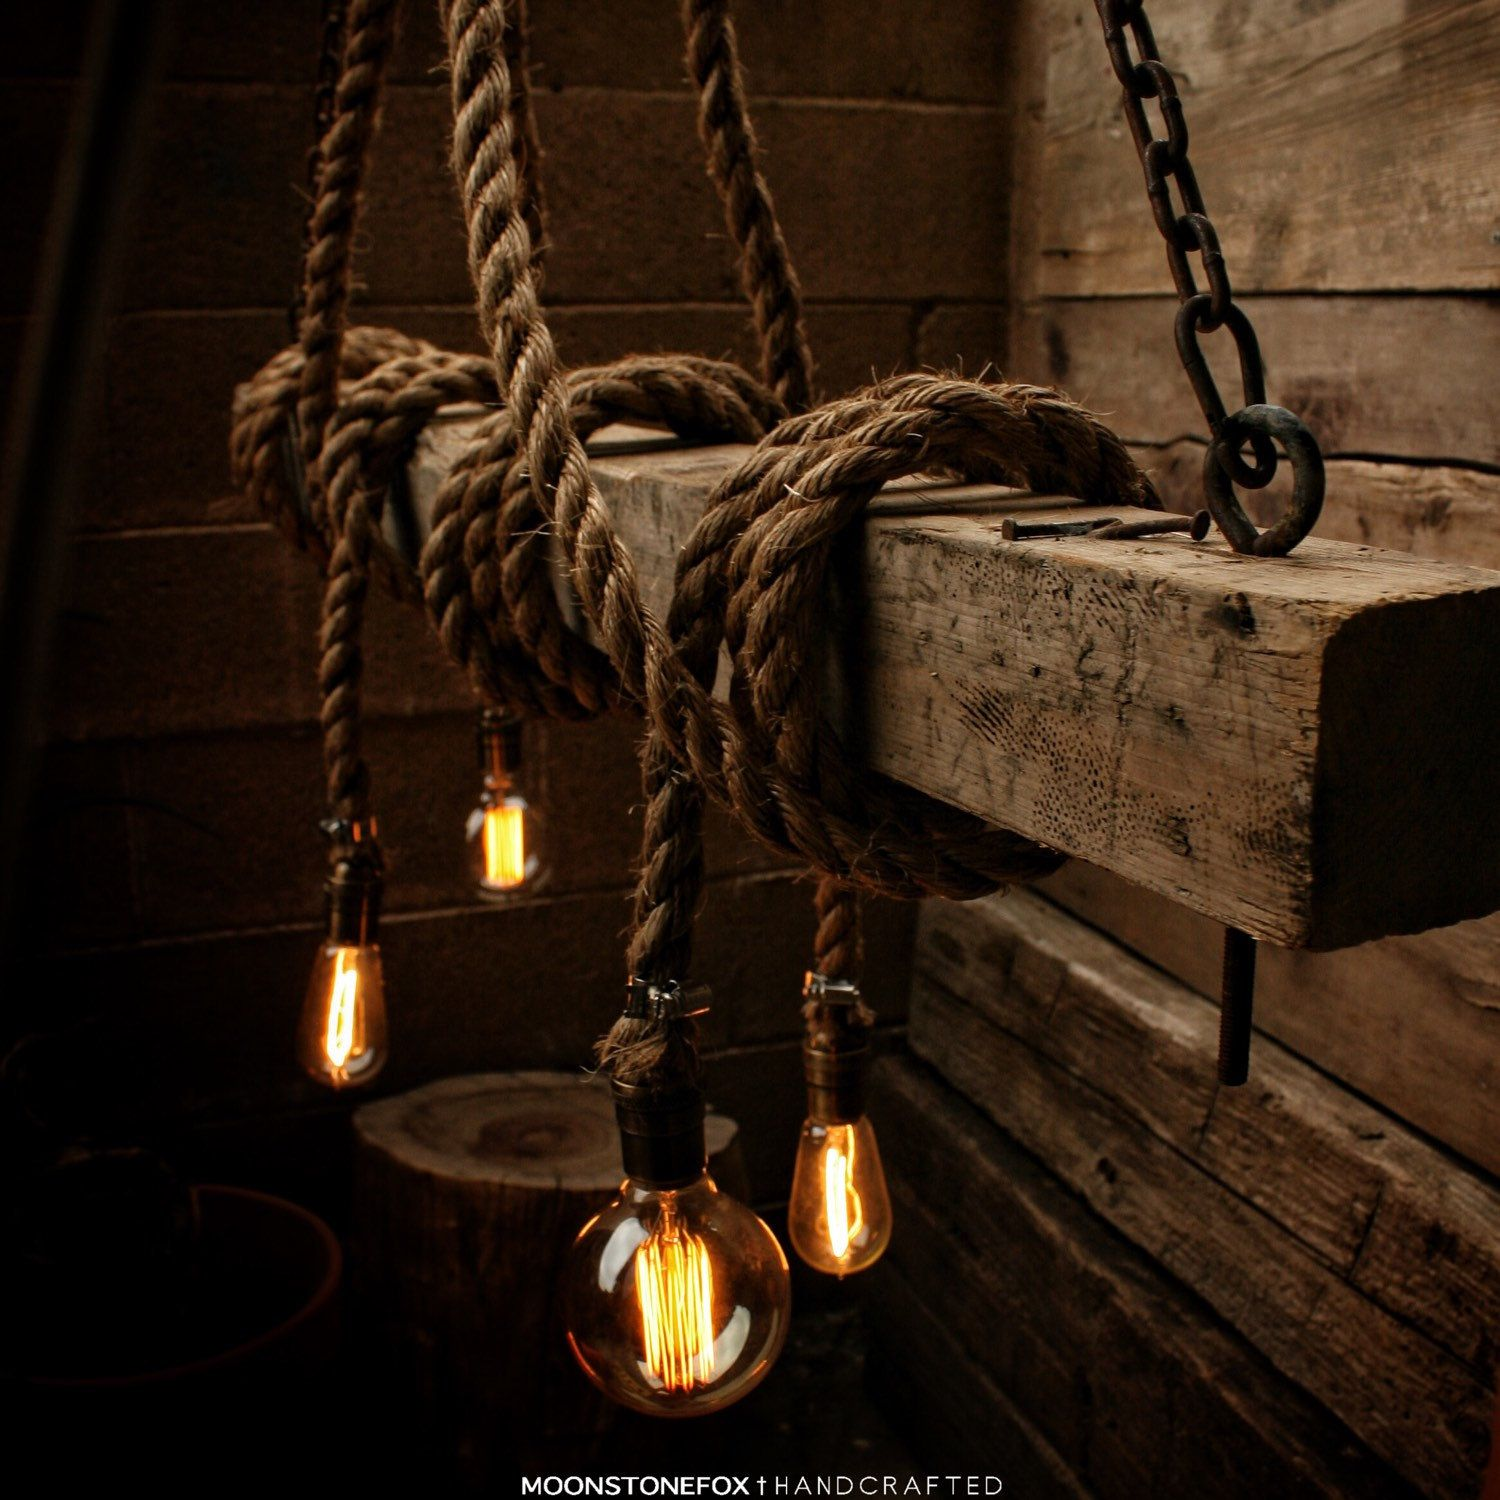 The Ahab 4 Industrial Rope Light Barn Beam Pendant